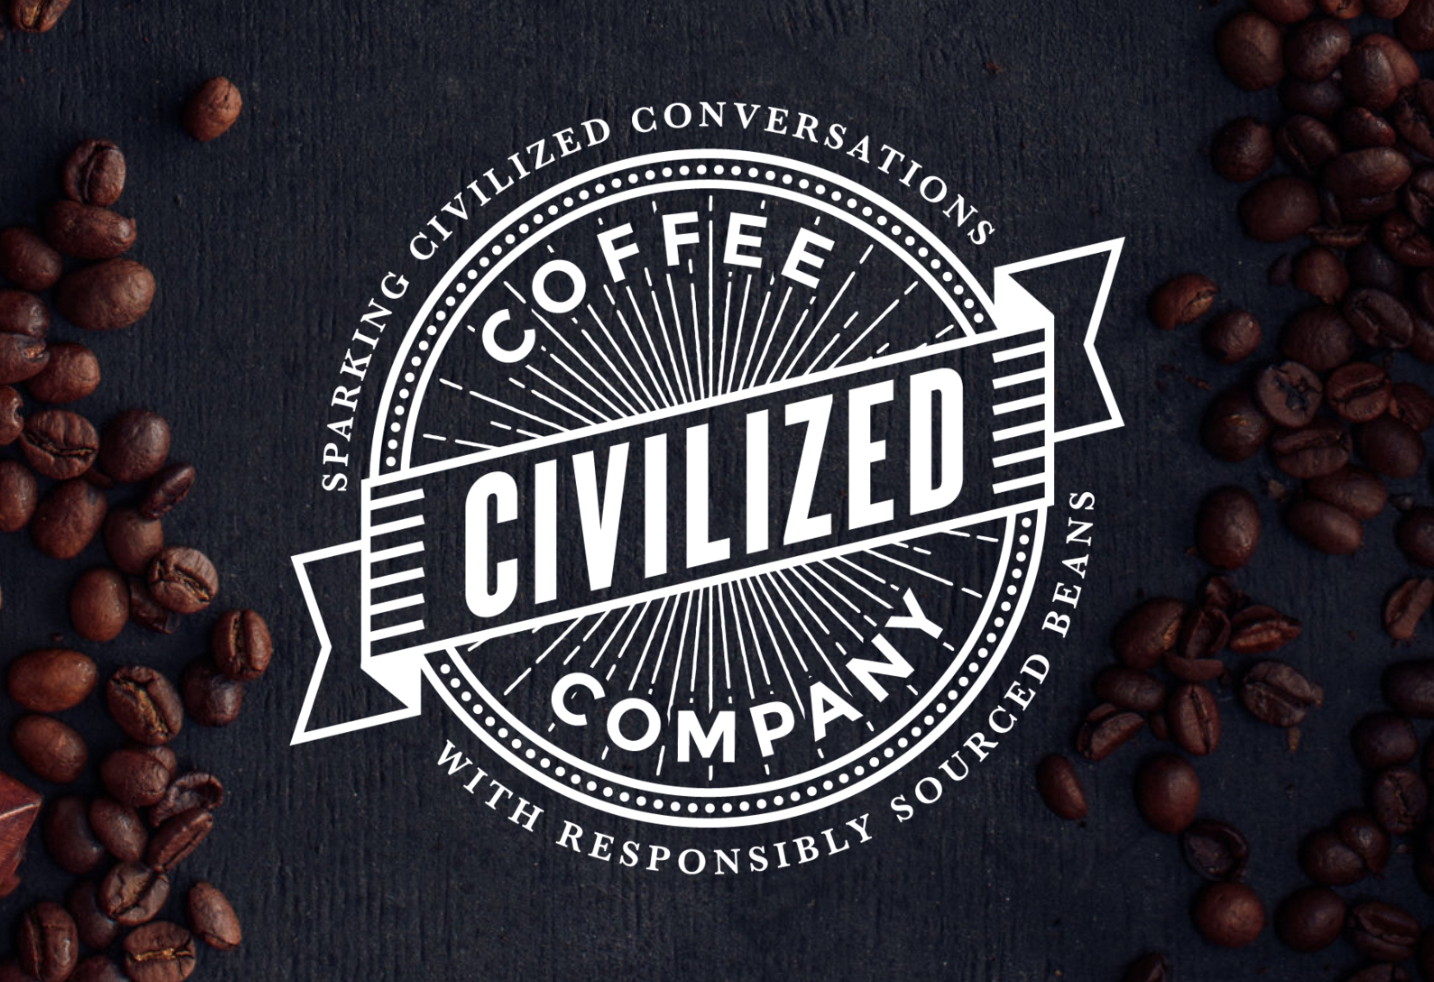 CivilizedCoffee.png